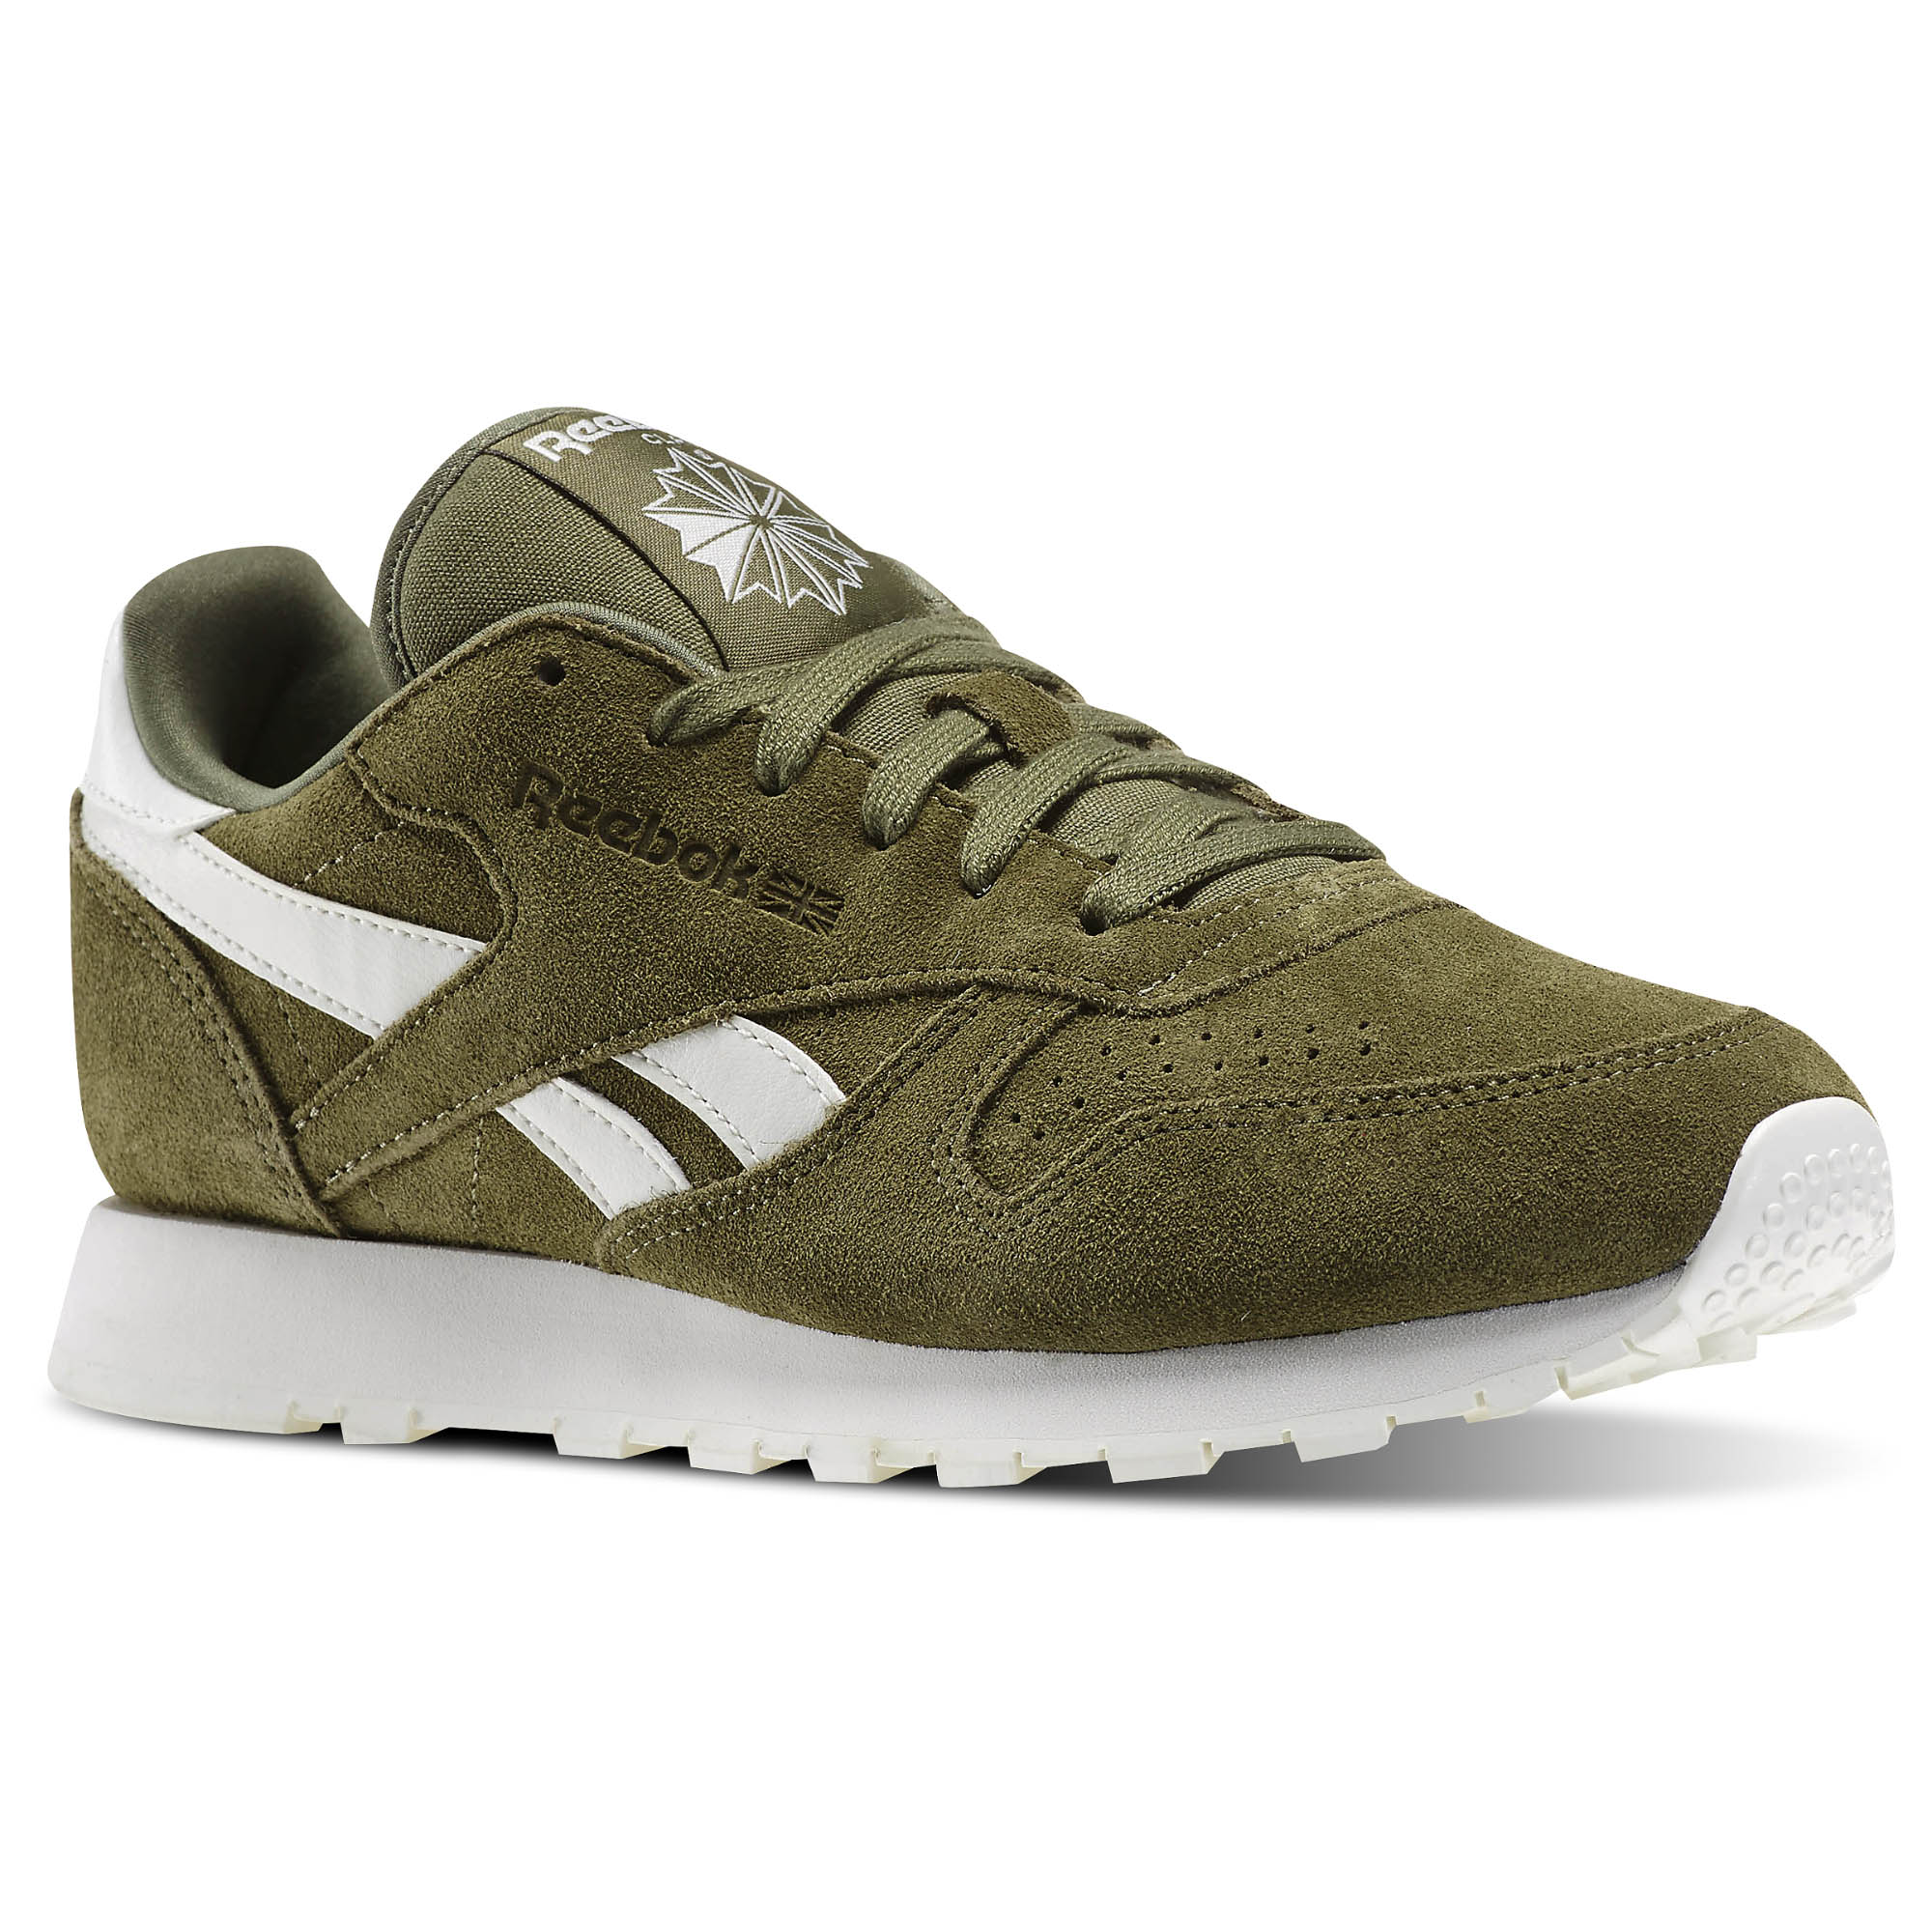 Reebok Classic Leather Suede Core - Green  a9136d550c61